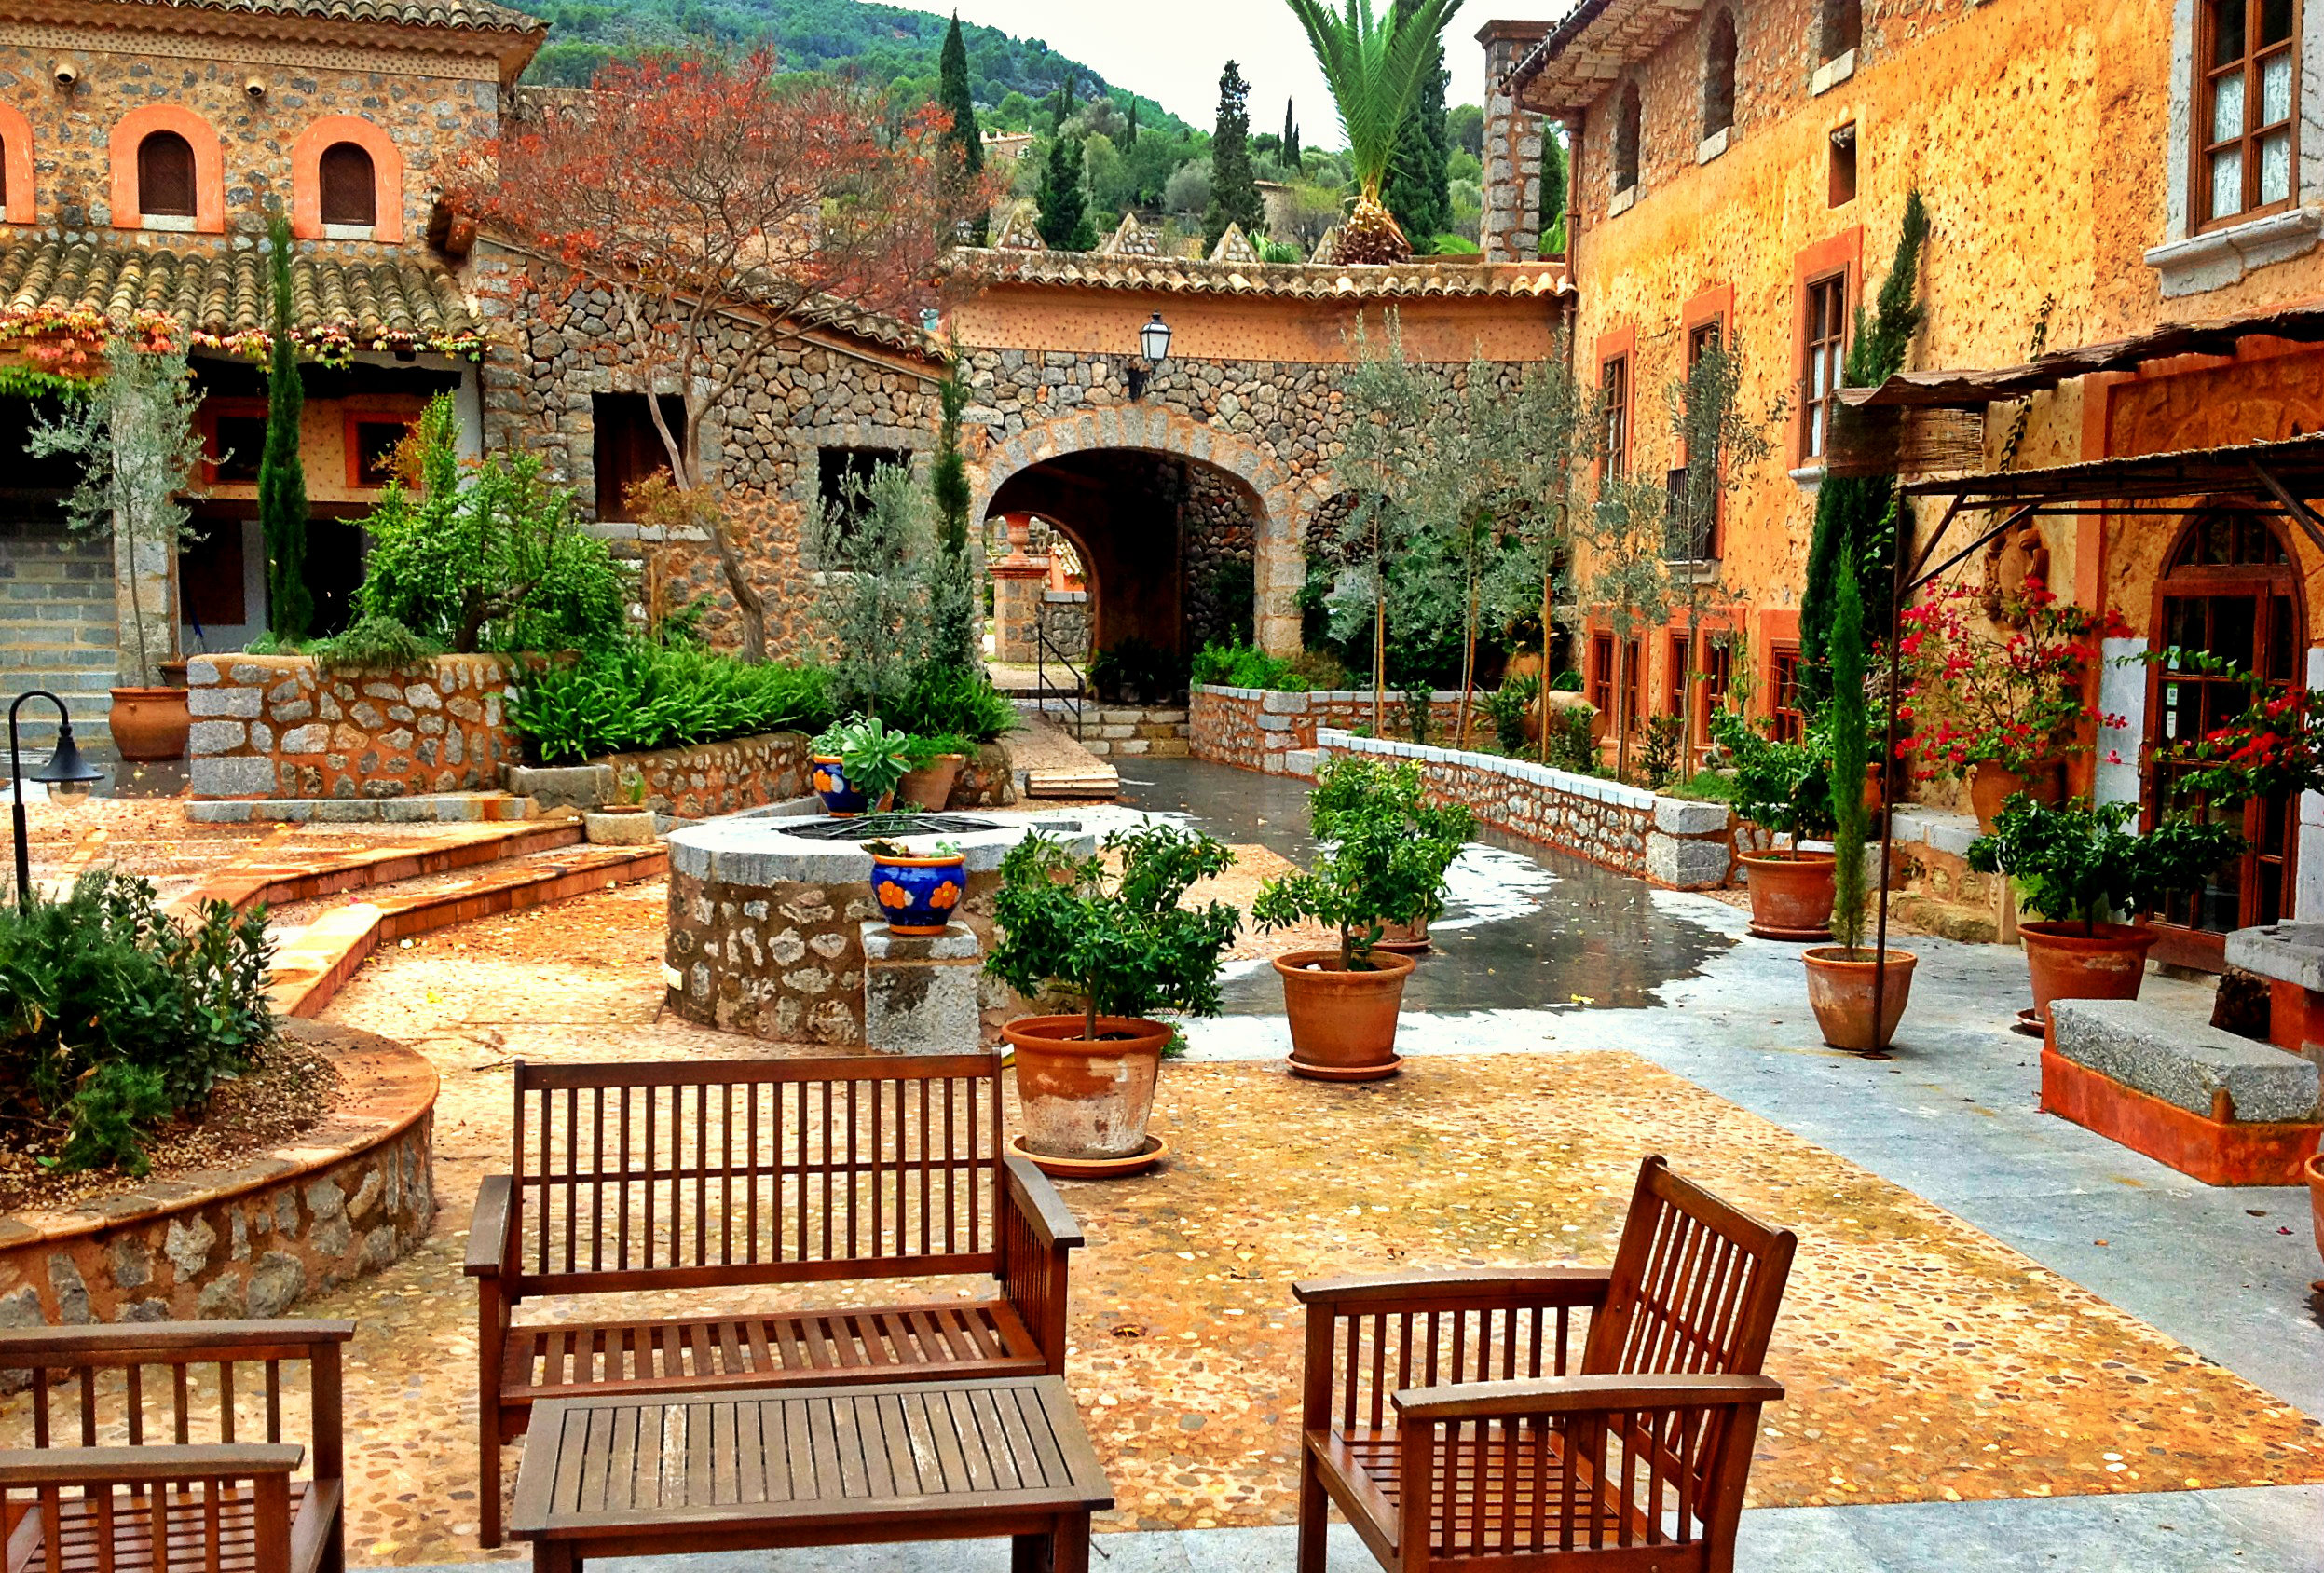 The famous Ca N'Aí Finca in Sóller - a great destination for romantic lovers and adventurers.